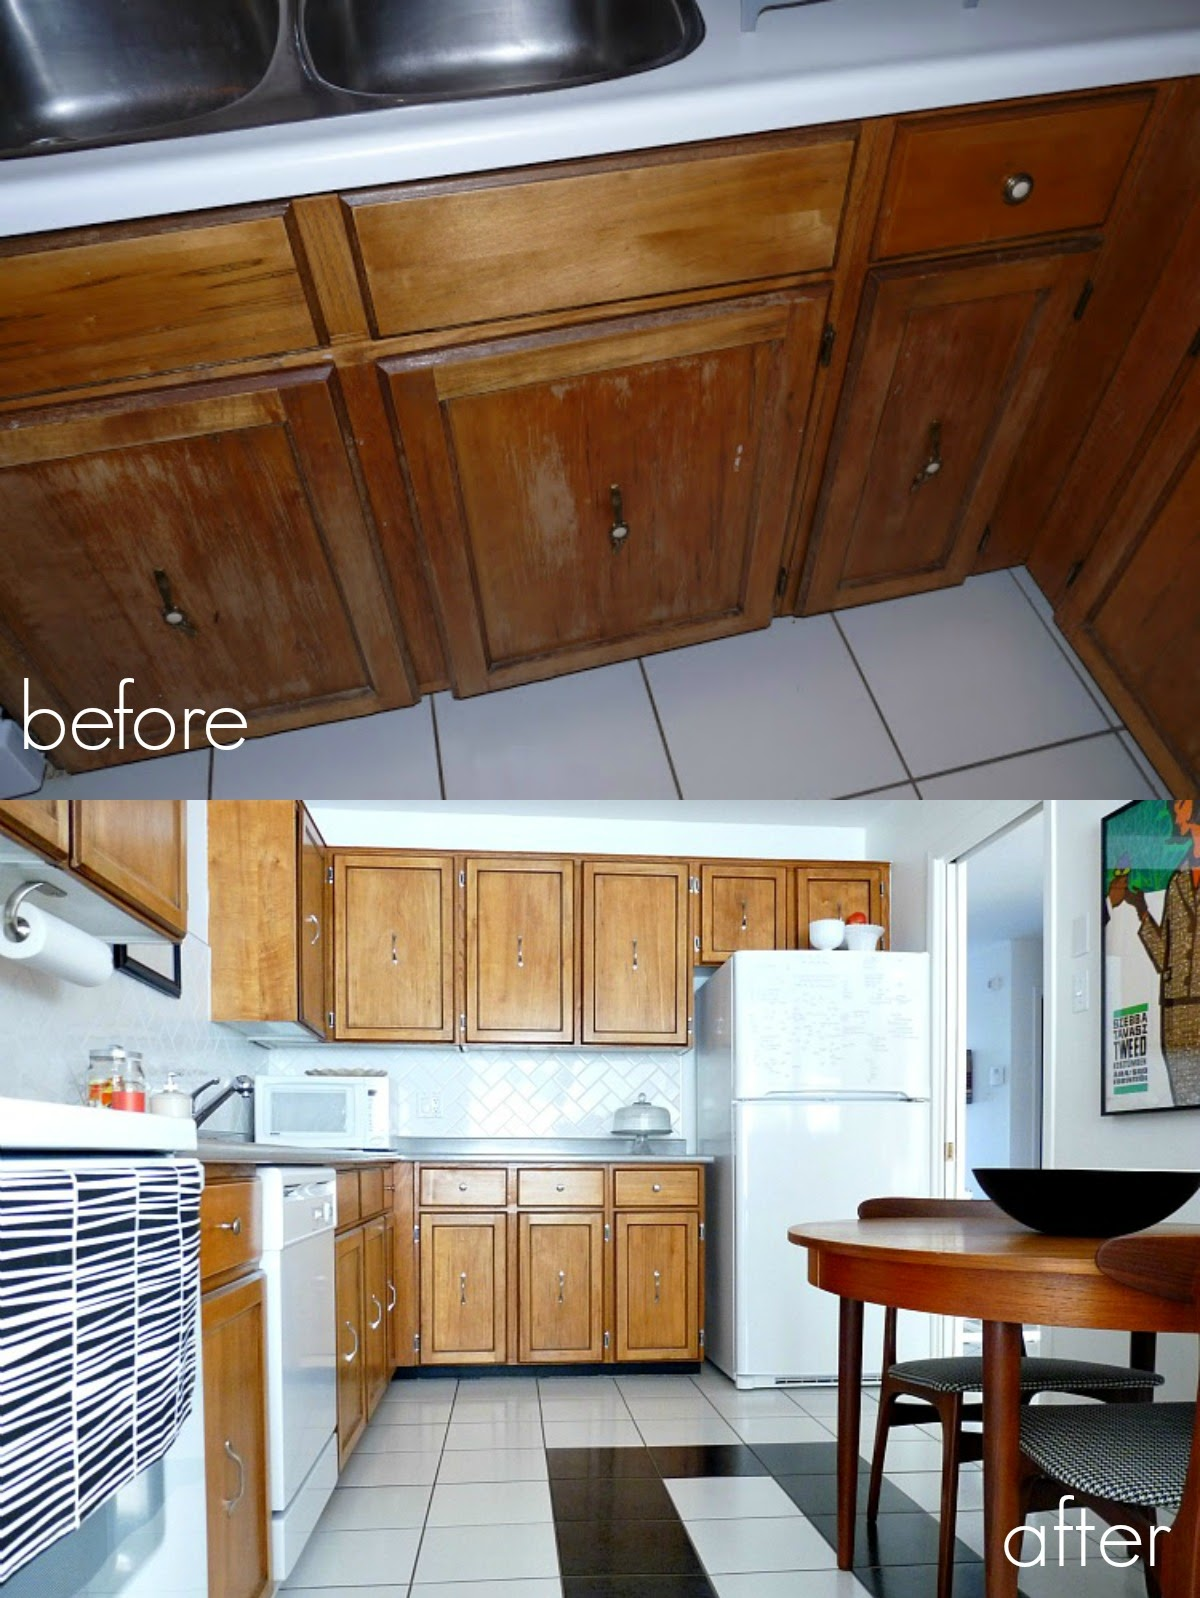 Refinishing Kitchen Cabinets Without Stripping Cabinet Refinishing 101 Latex Paint Vs Stain Vs Rust